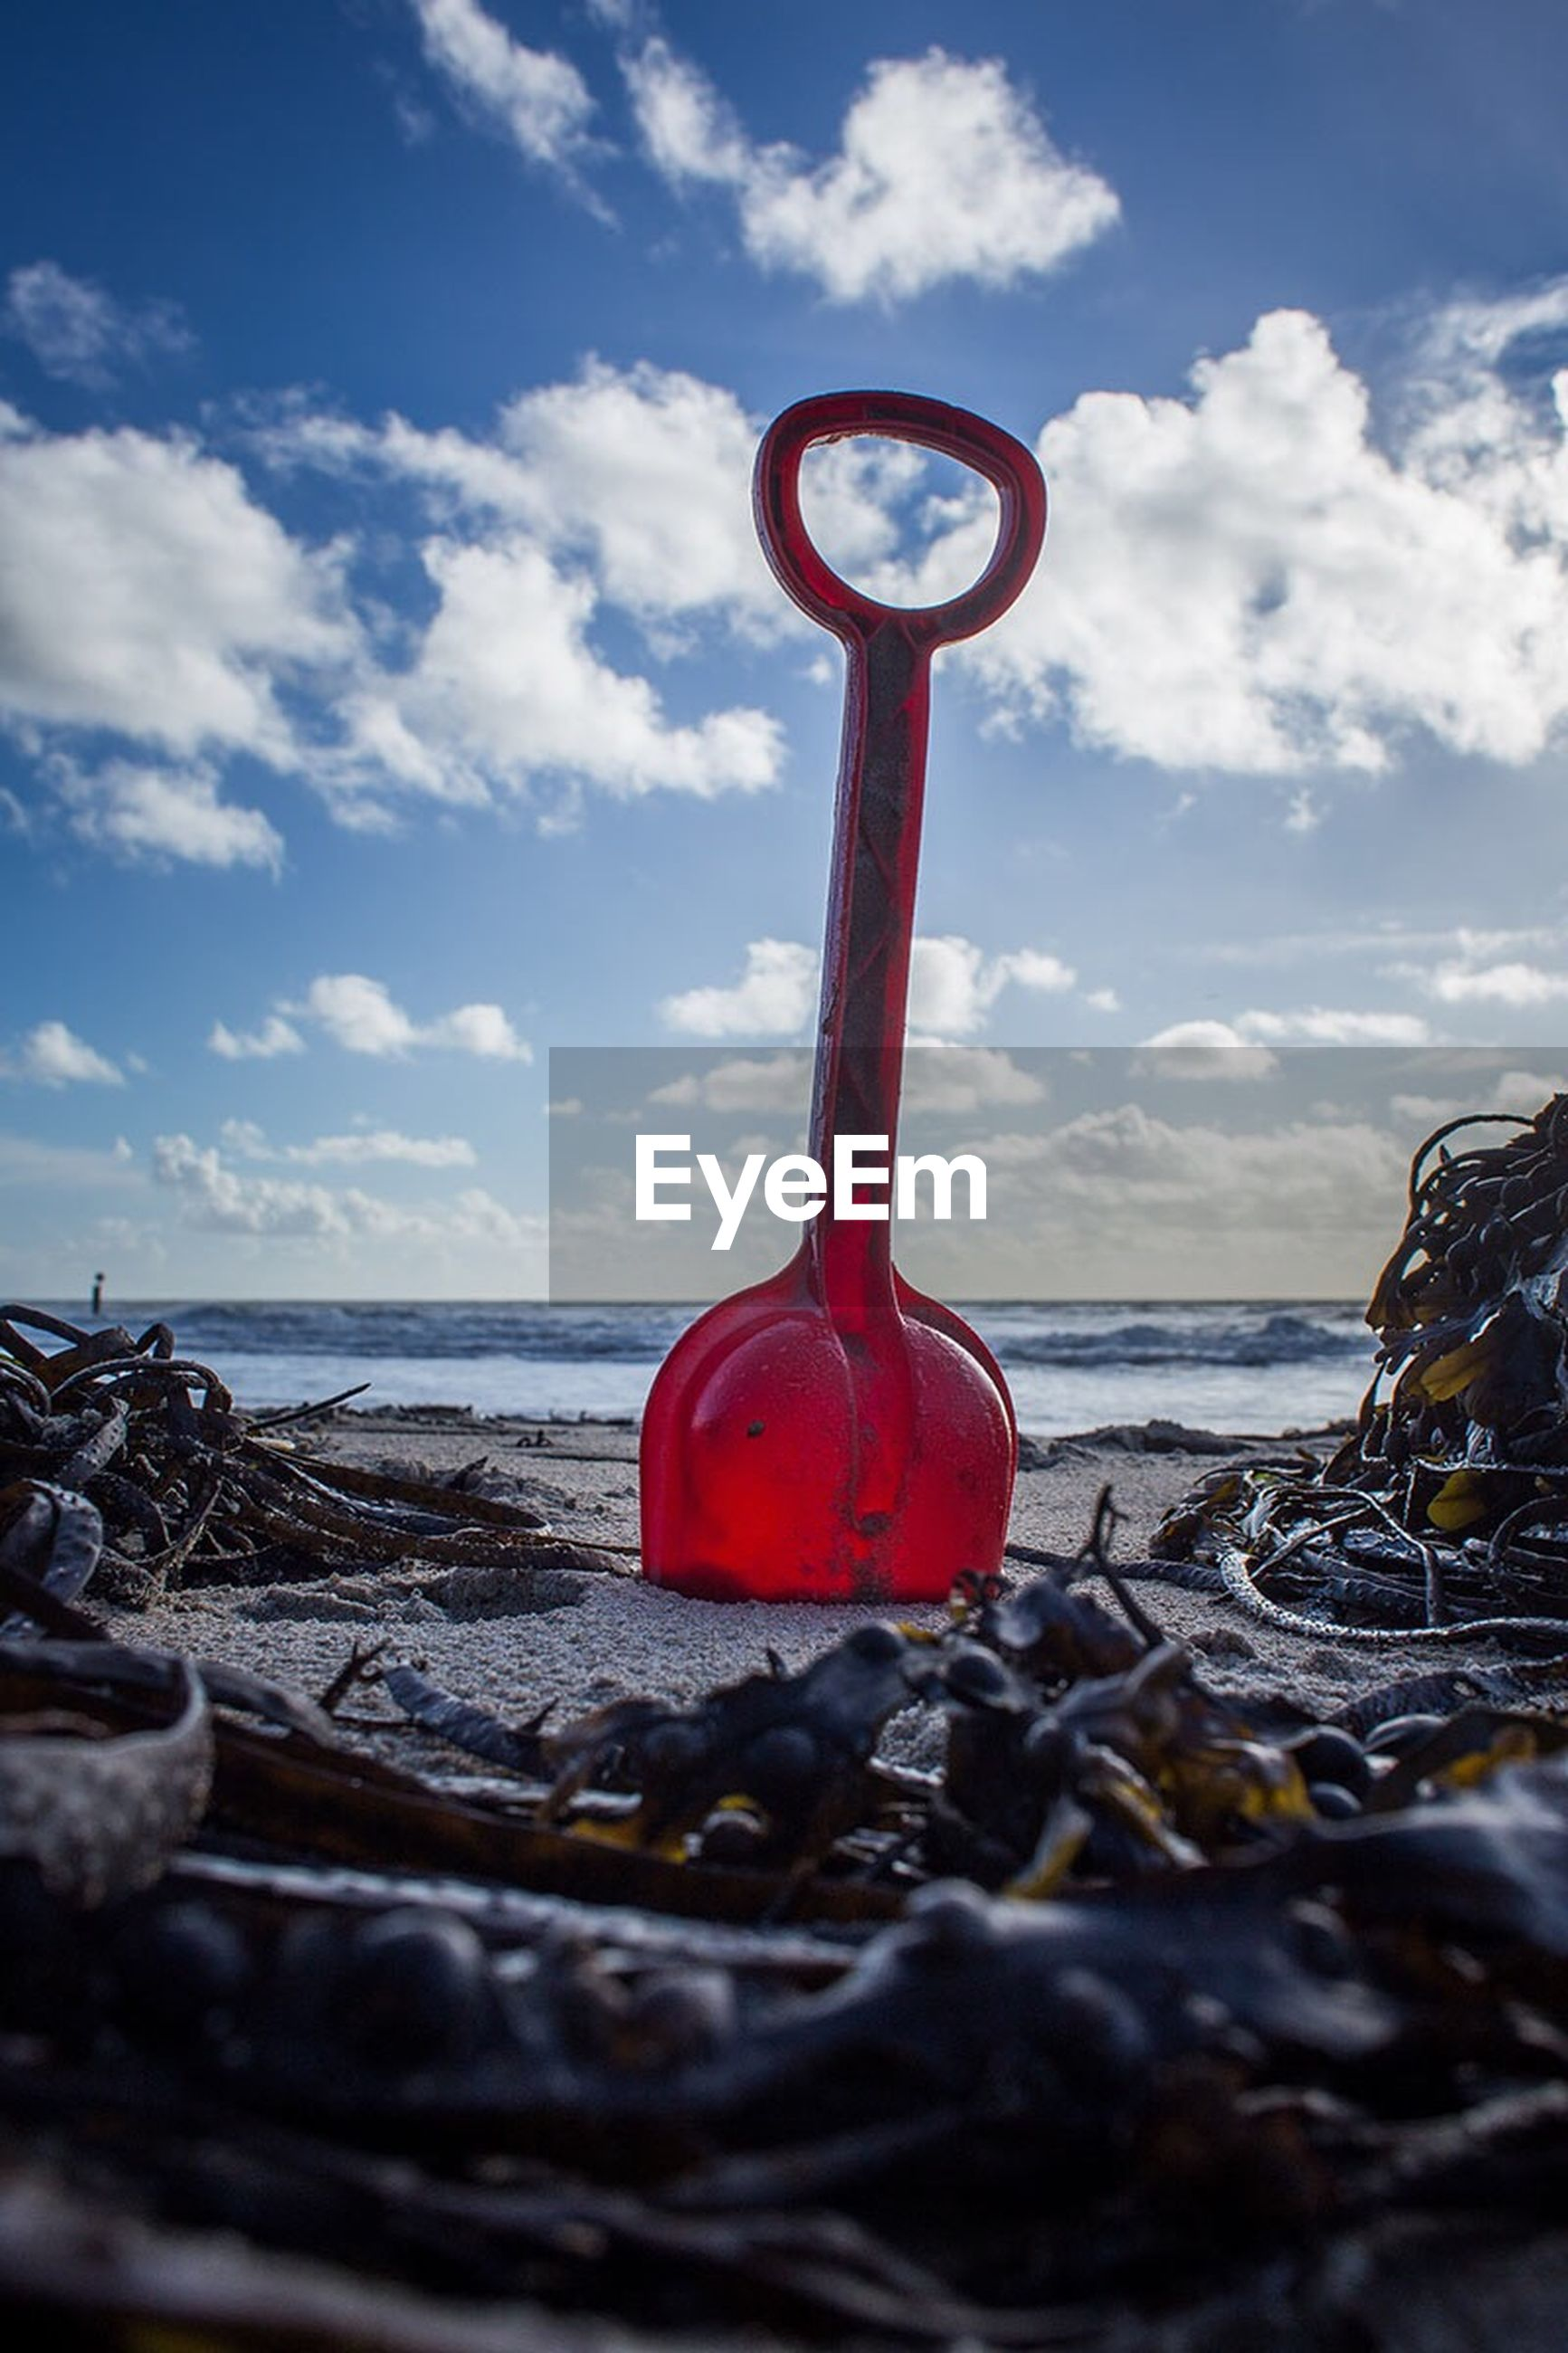 sea, water, sky, red, horizon over water, beach, shore, safety, cloud - sky, tranquility, protection, guidance, cloud, tranquil scene, day, outdoors, circle, stone - object, metal, sand